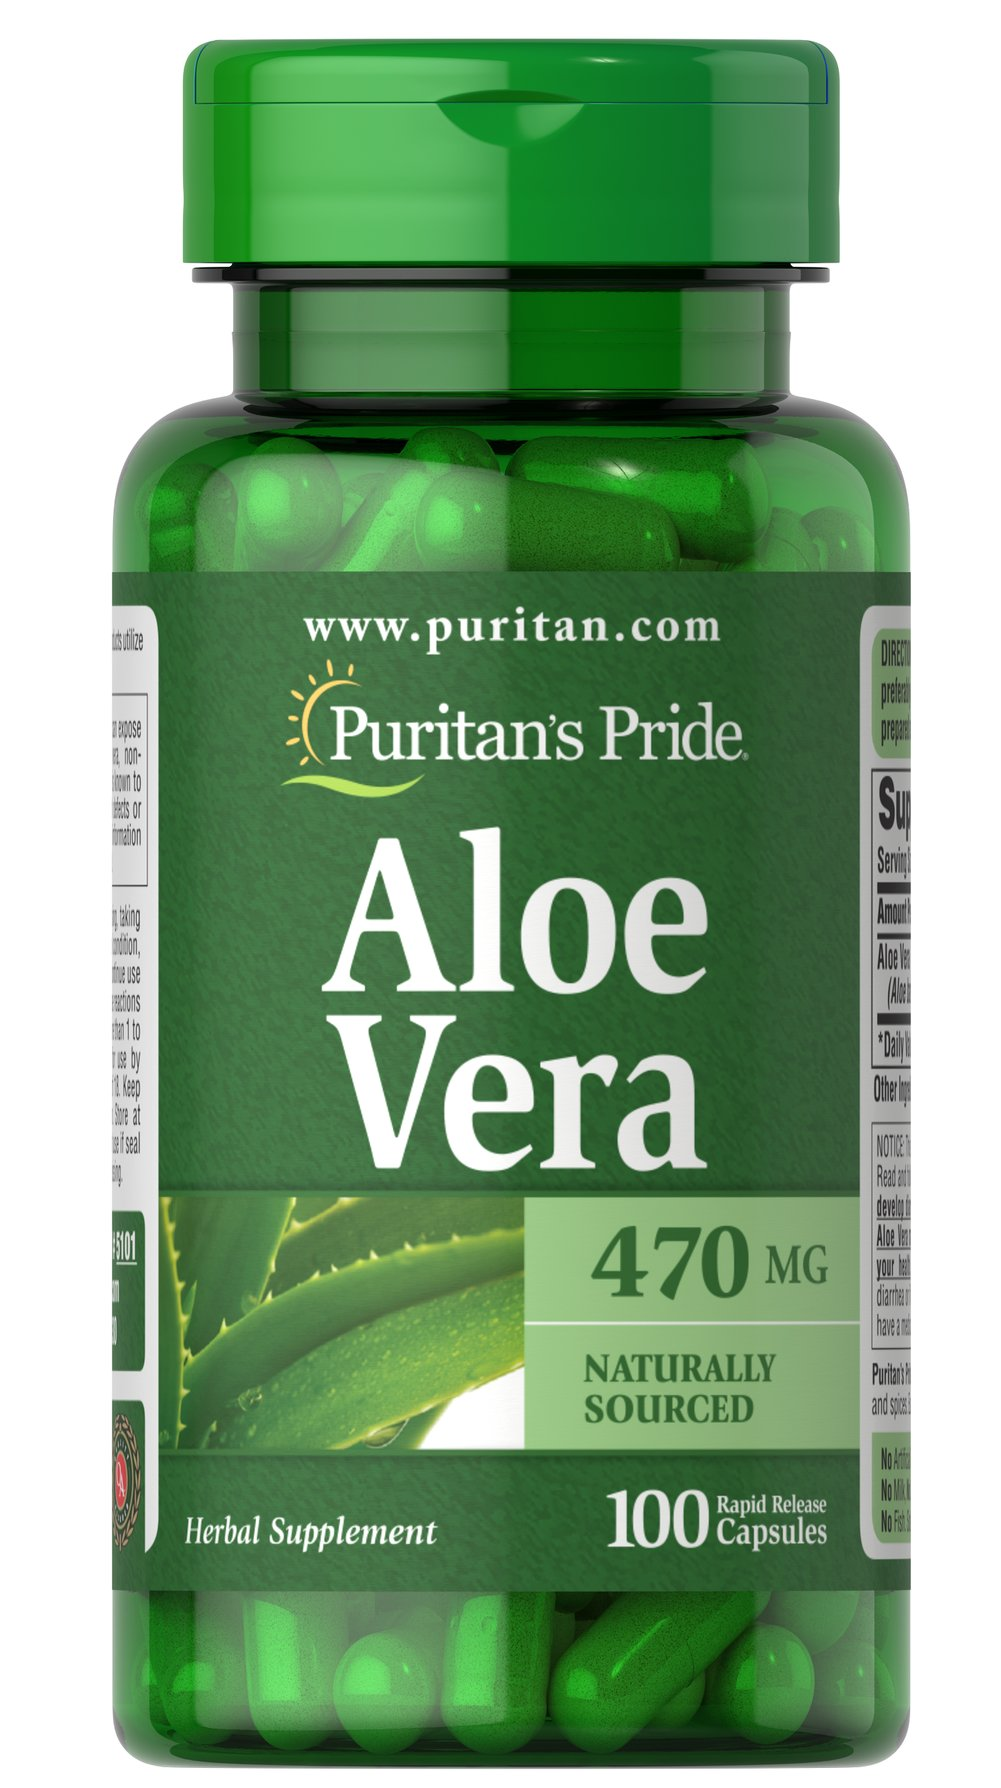 Aloe Vera 470 mg Thumbnail Alternate Bottle View